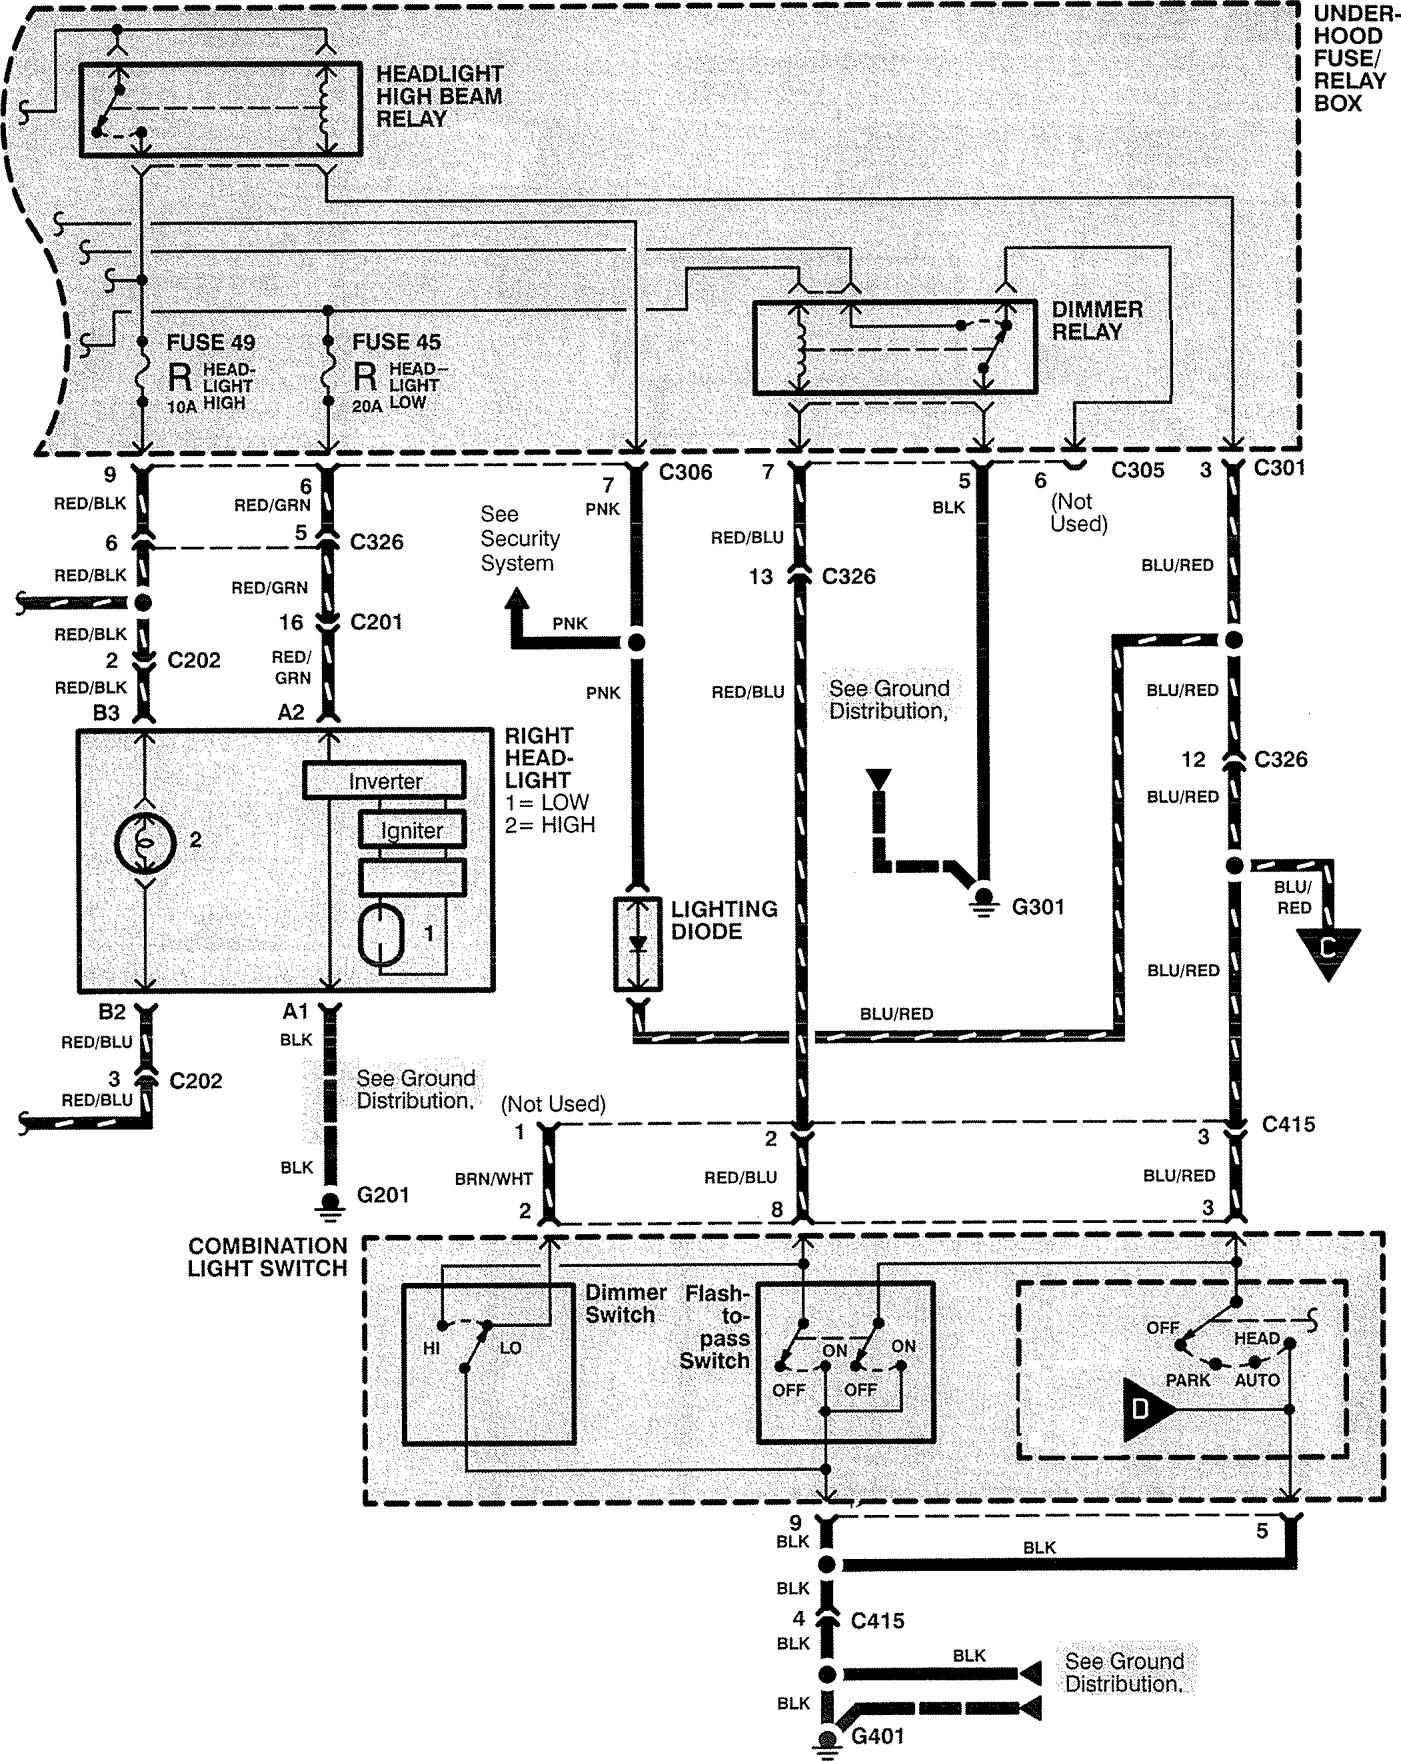 acura rl (1999) - wiring diagrams - headlamps - carknowledge 2004 acura rl wiring diagram 1999 acura rl wiring diagram